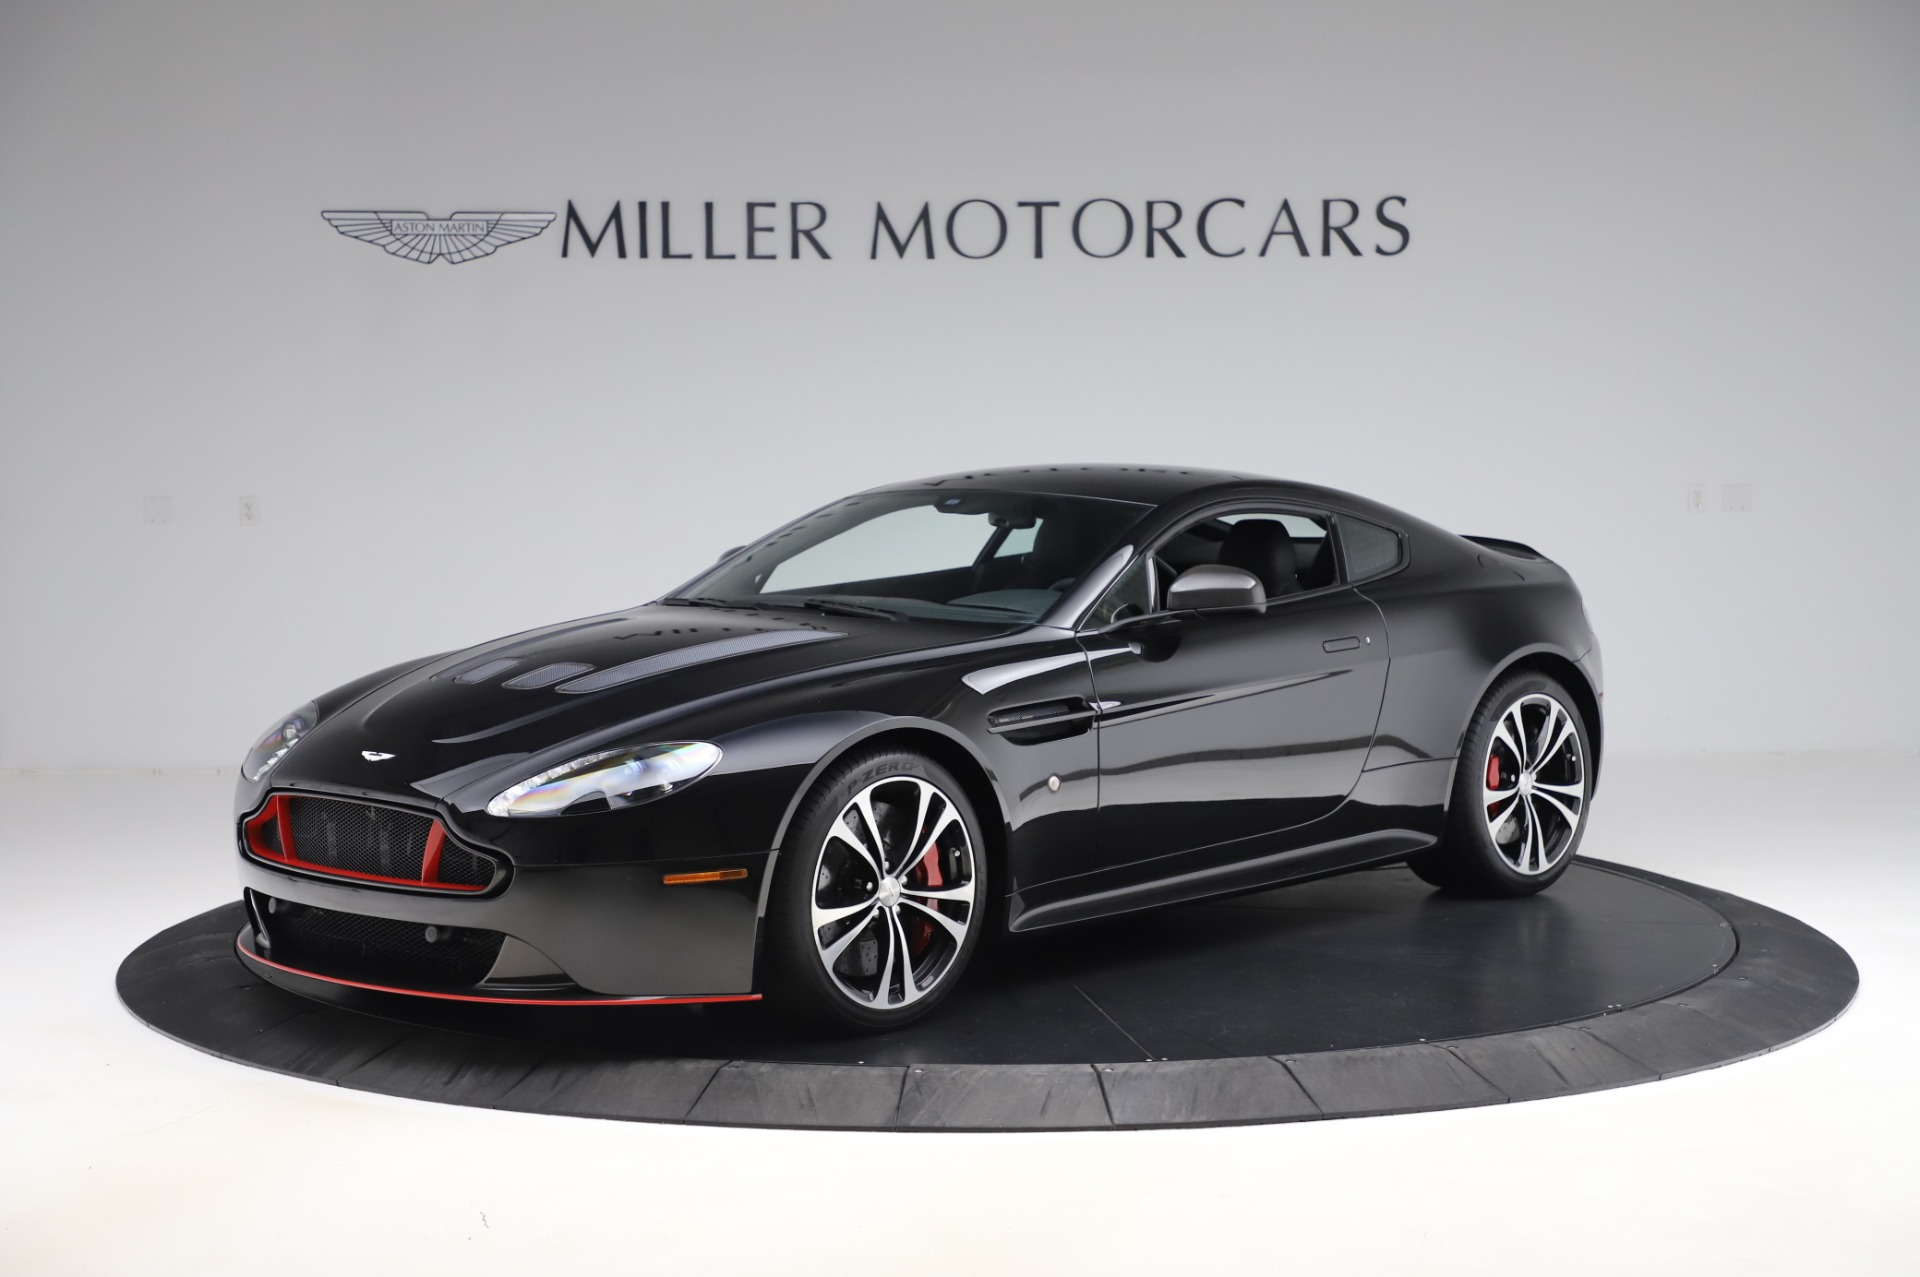 New 2017 Aston Martin V12 Vantage S Coupe for sale $179,900 at Rolls-Royce Motor Cars Greenwich in Greenwich CT 06830 1